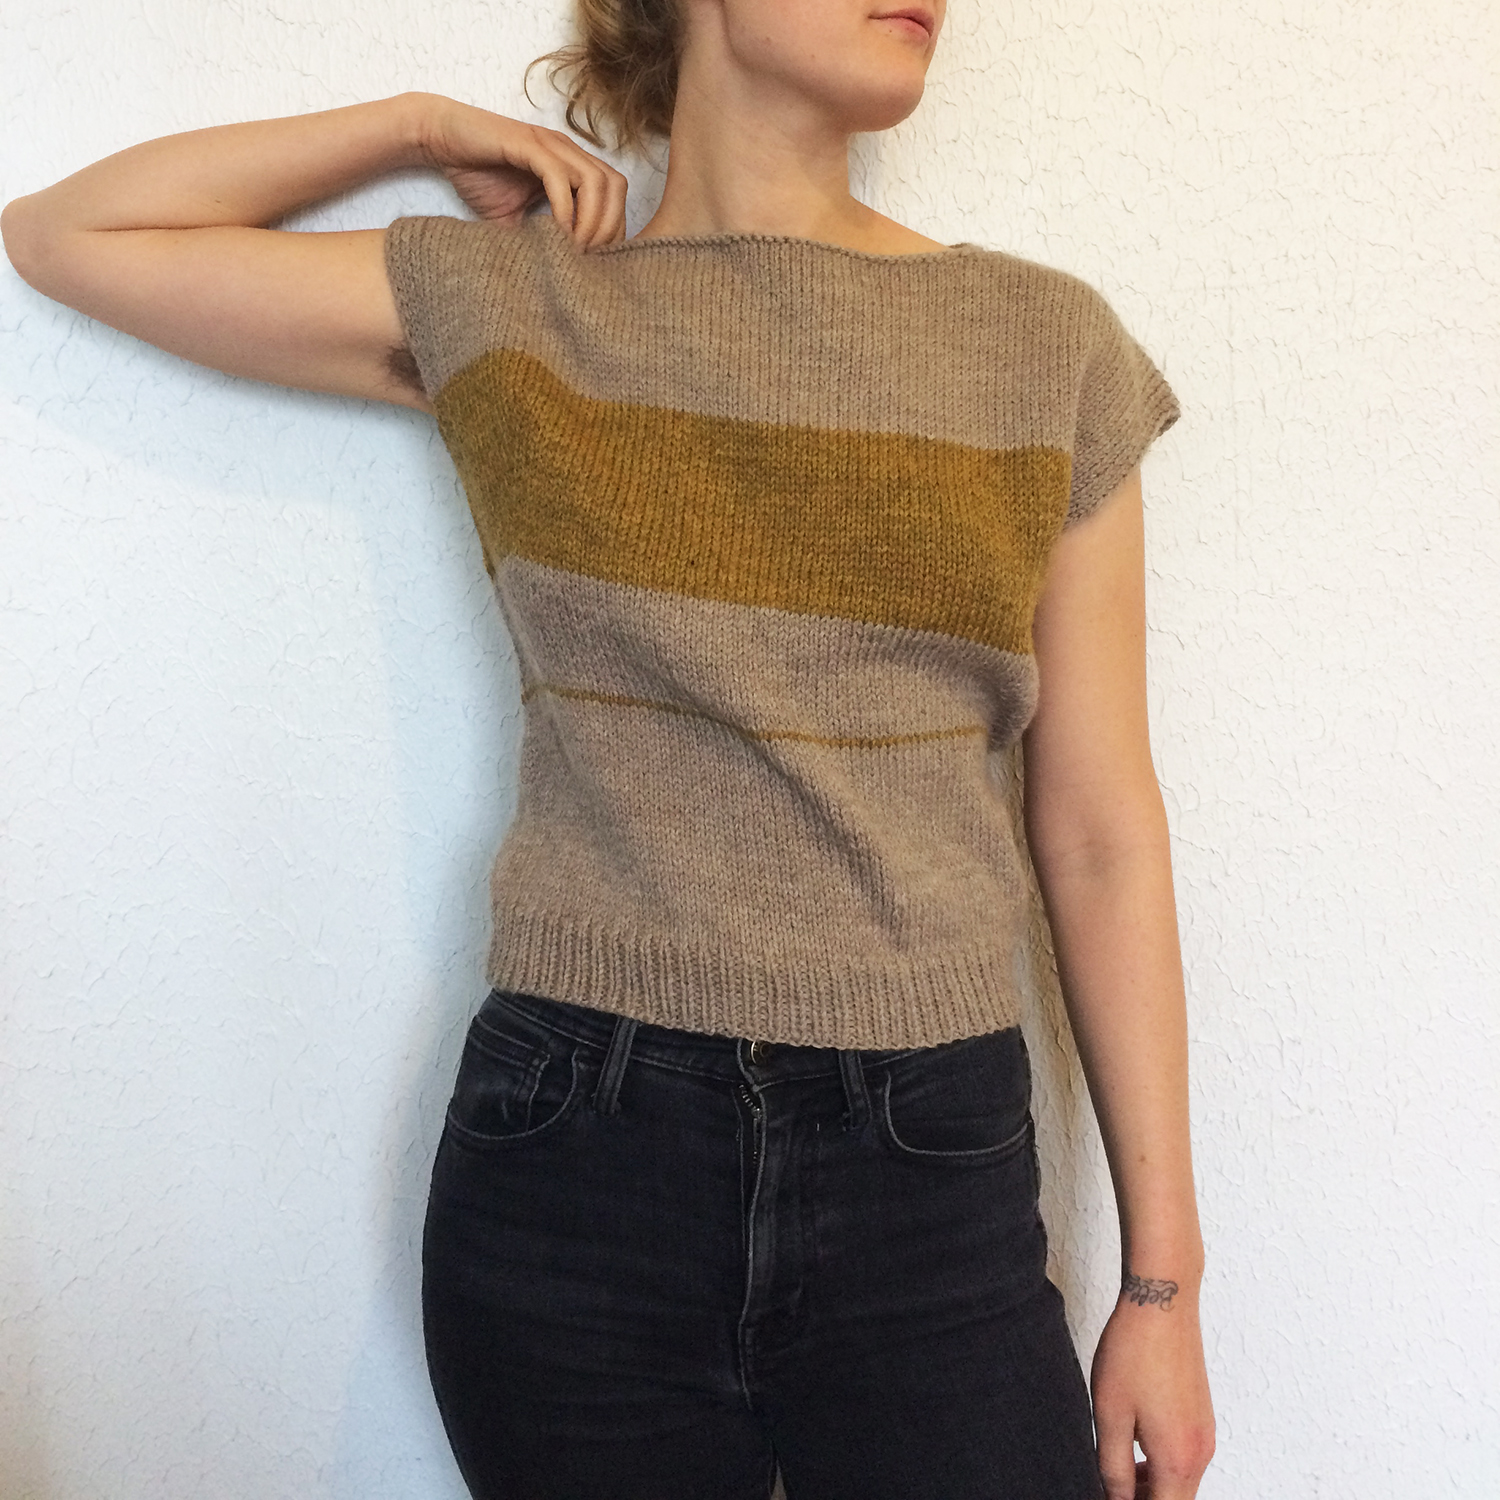 Otte Knit Top // 100% wool, handknit. Inspired by the weavings of Benita Koch-Otte of the Bauhaus // September 2016